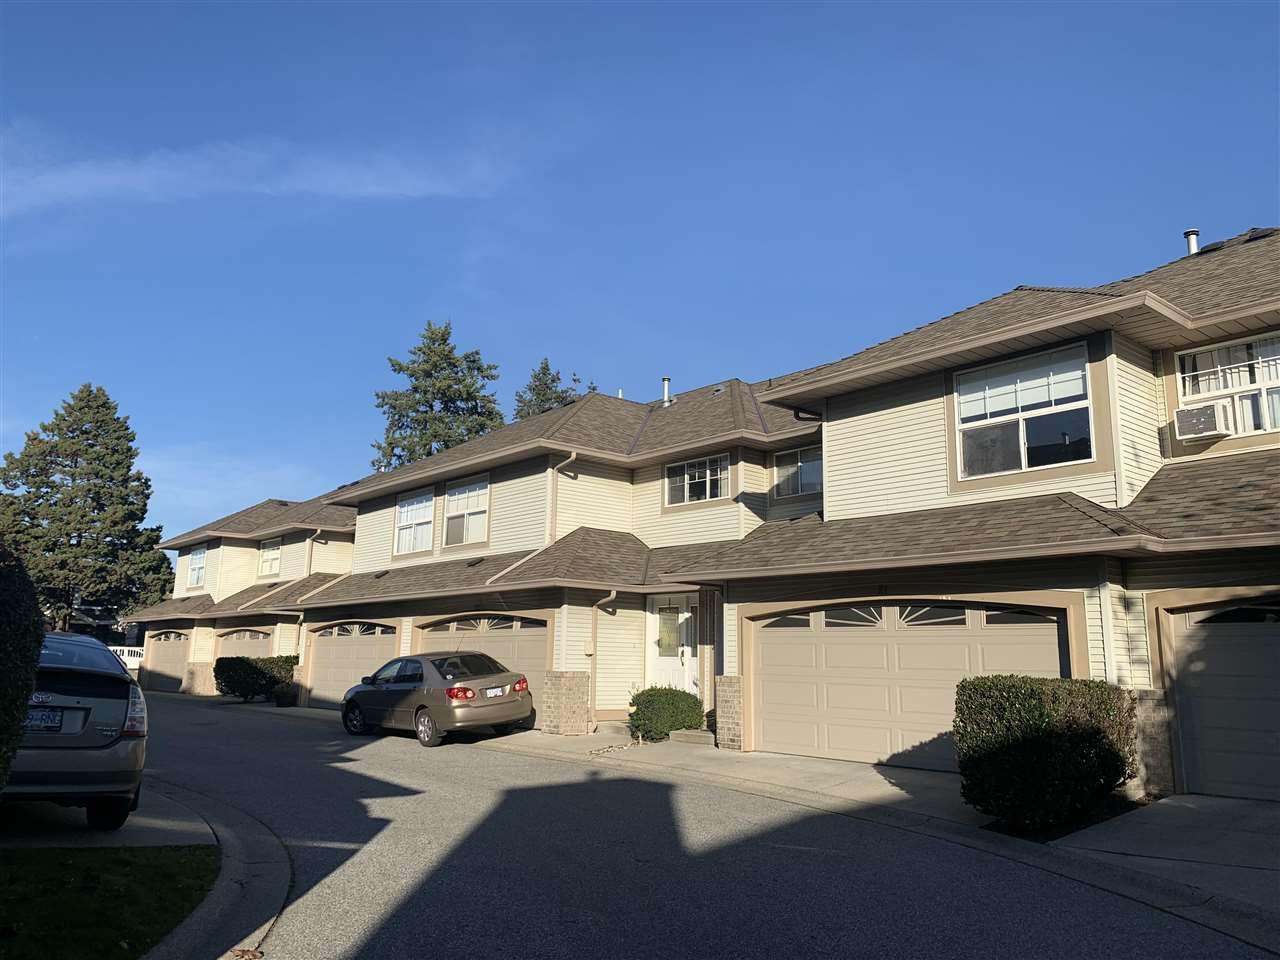 """Main Photo: 22 12165 75 Avenue in Surrey: West Newton Townhouse for sale in """"Strawberry Hill Estates"""" : MLS®# R2514051"""